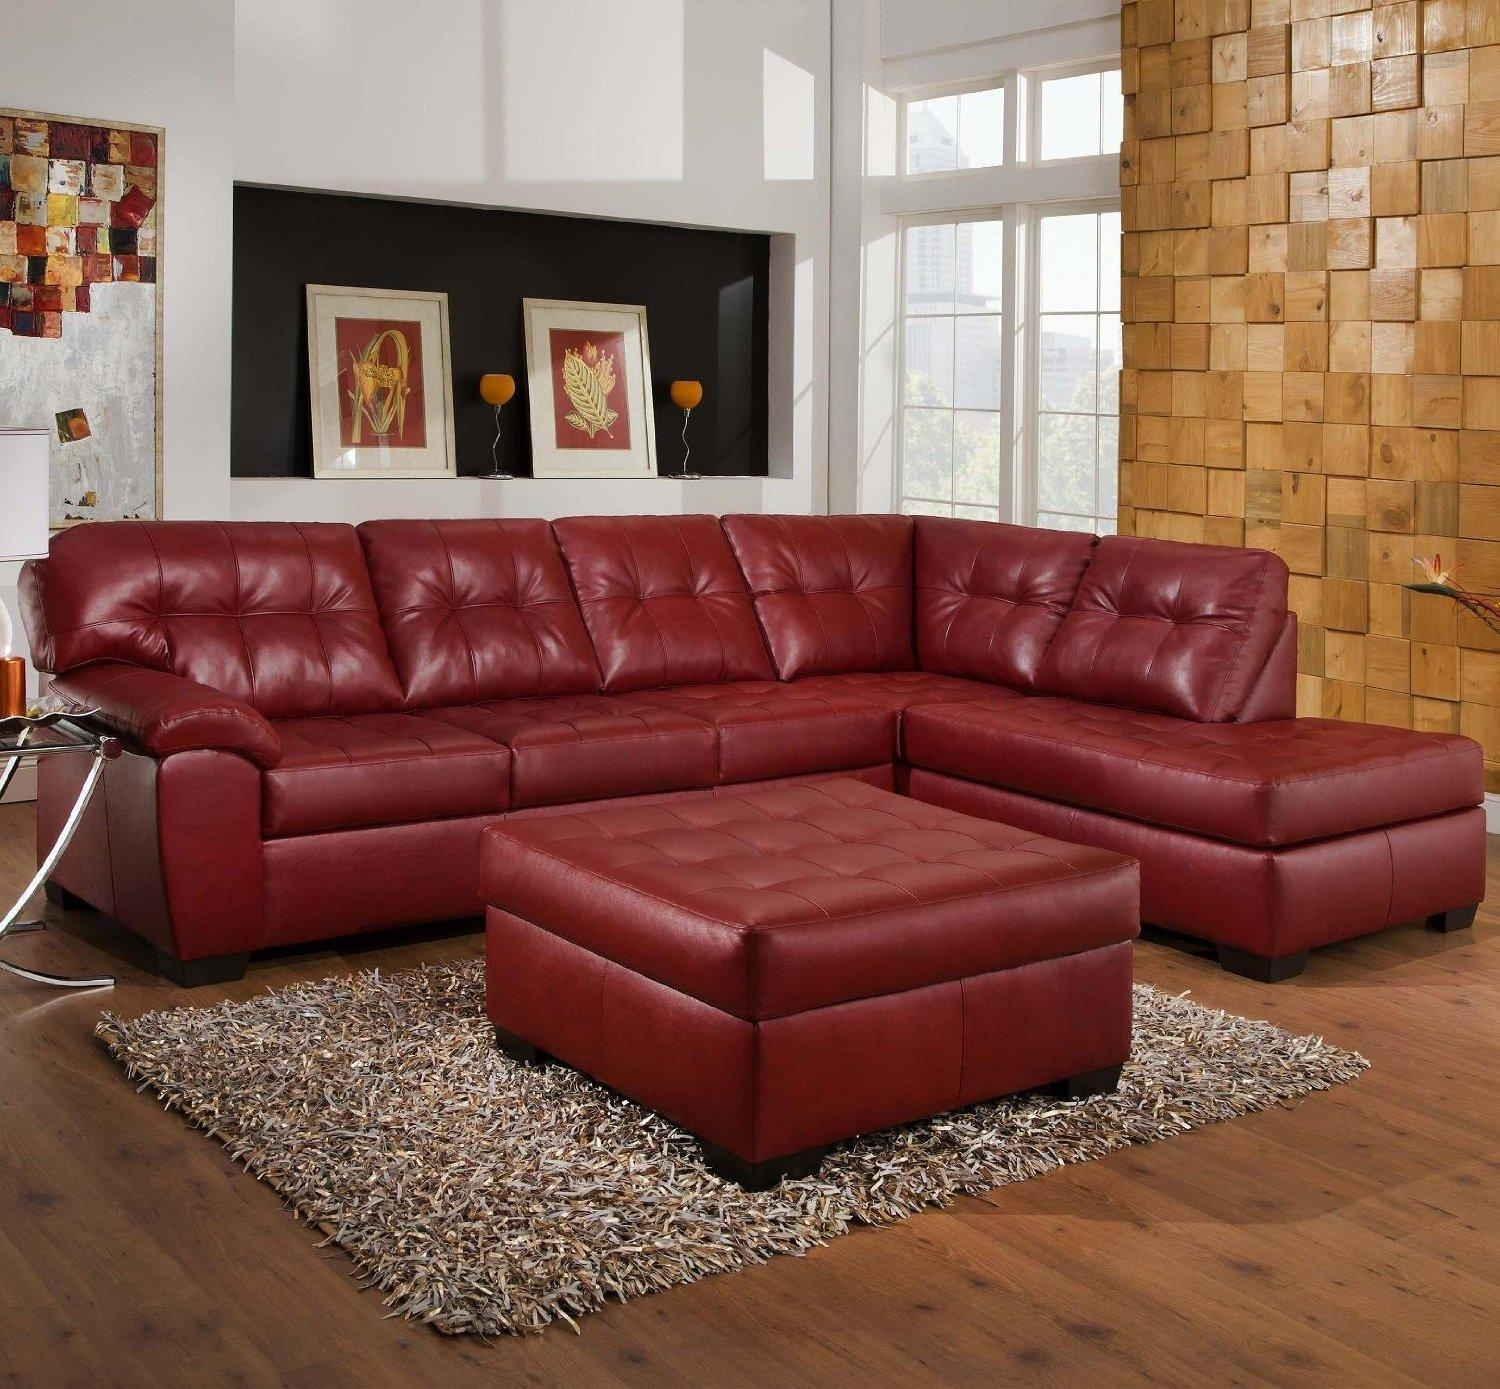 Big Lots Sofas (View 12 of 20)